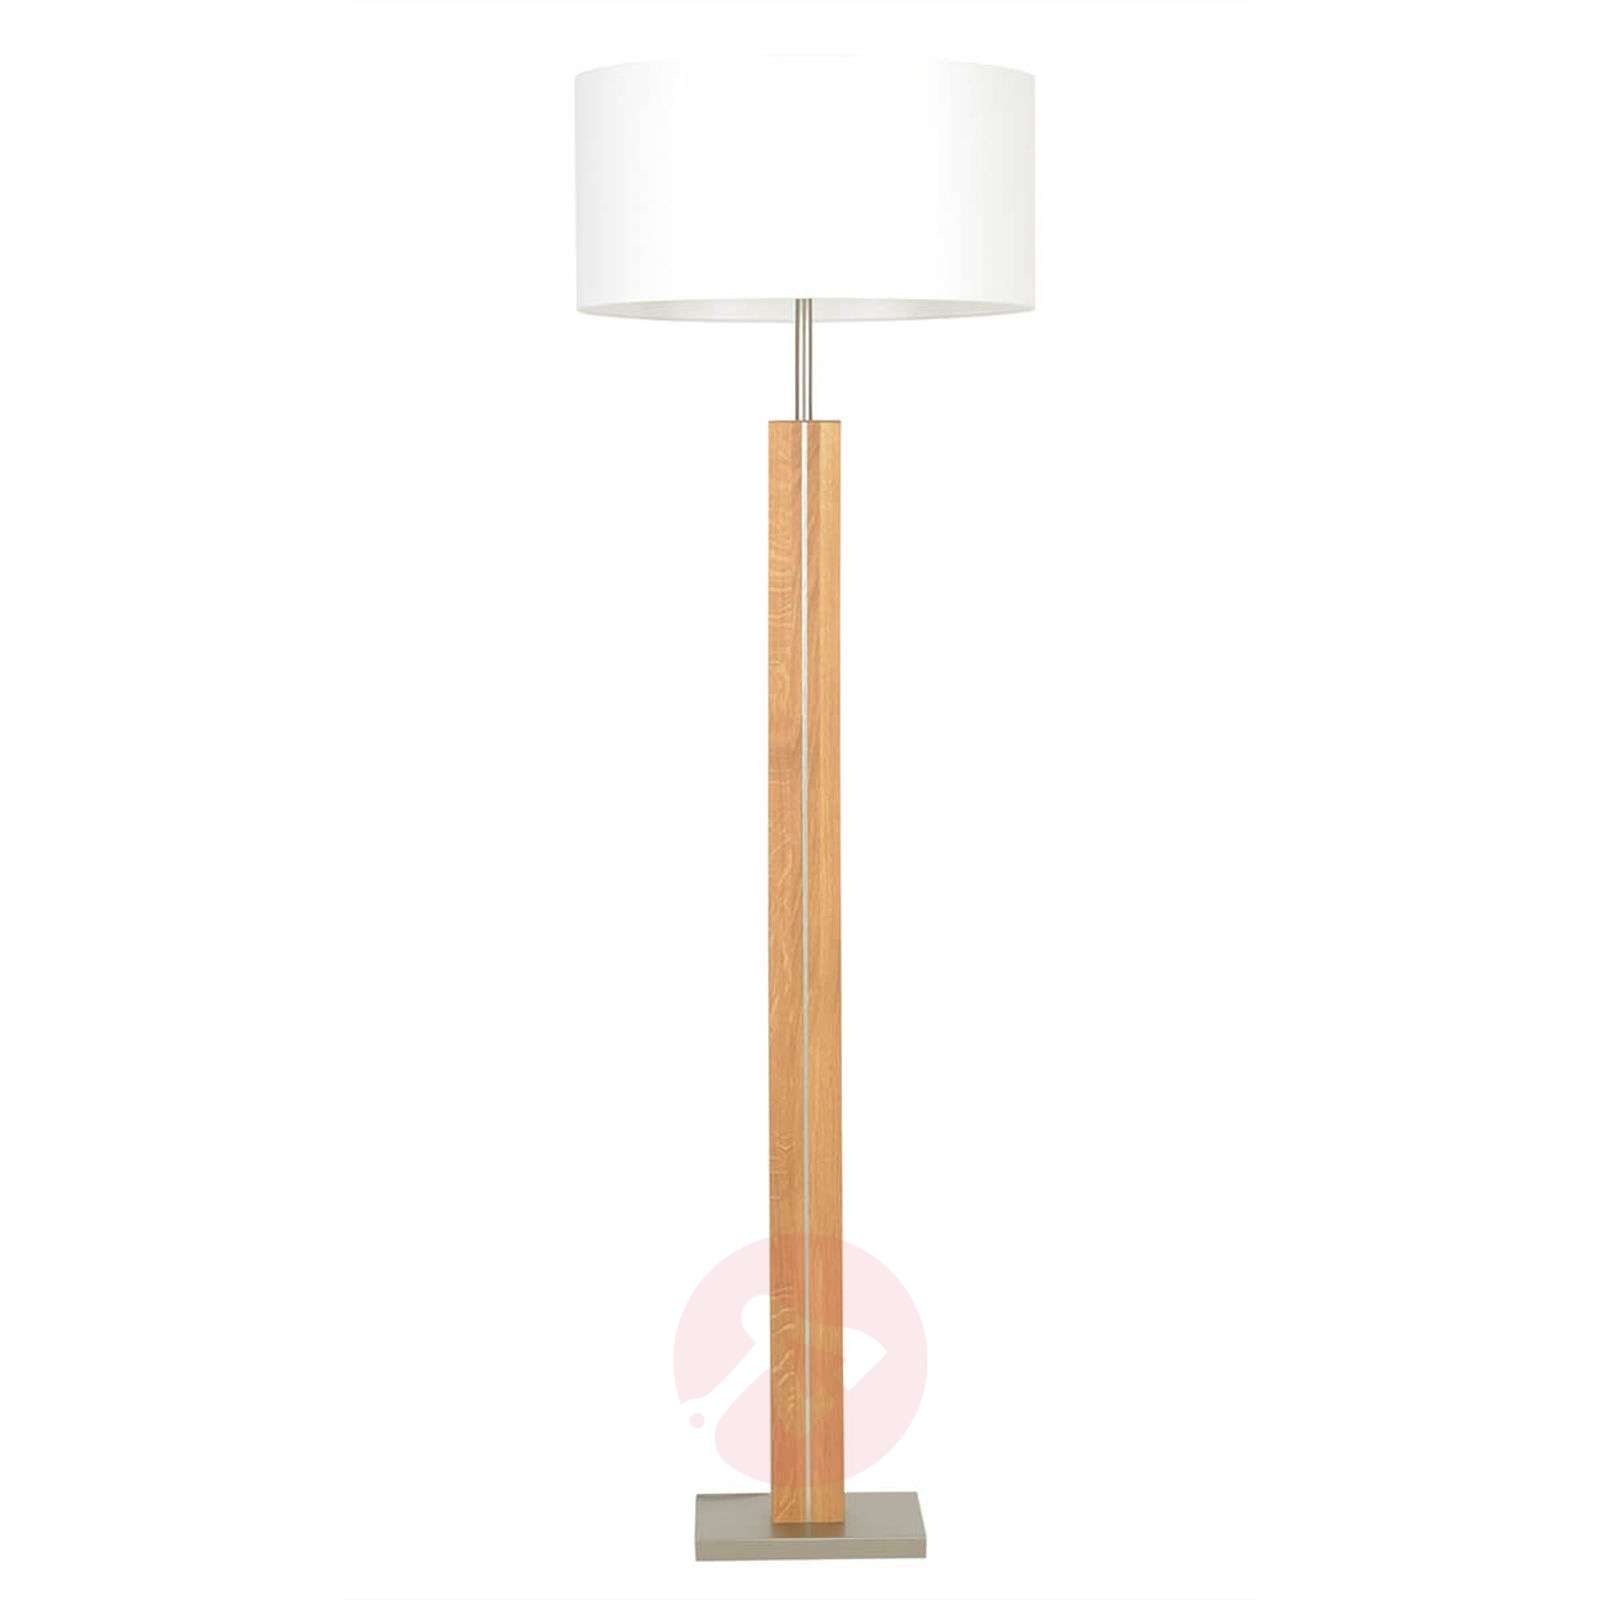 Wooden floor lamp dana with white fabric shade lights wooden floor lamp dana with white fabric shade 4543010 01 aloadofball Image collections